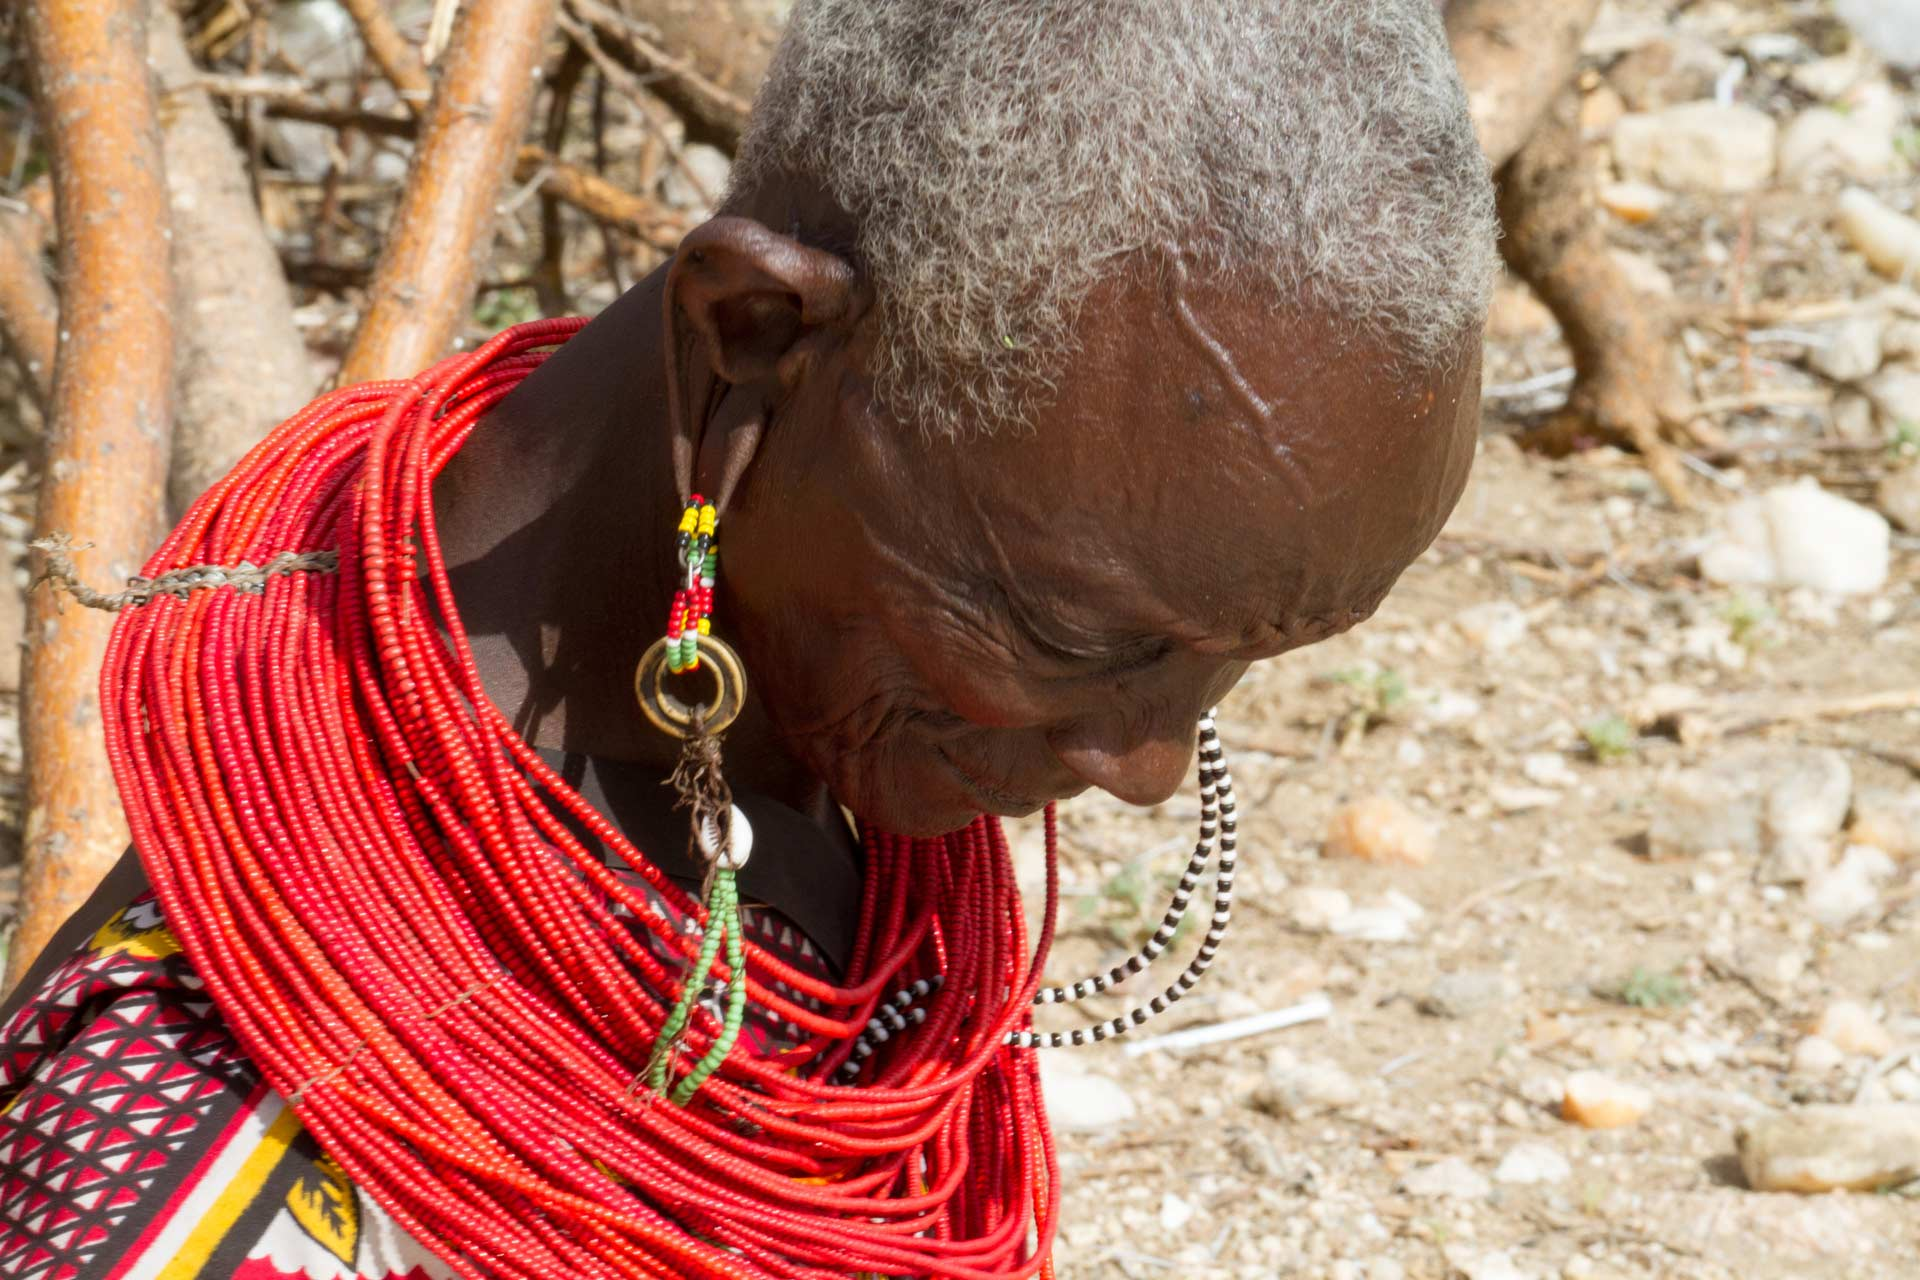 Elderly Samburu woman, Samburu County, Kenya